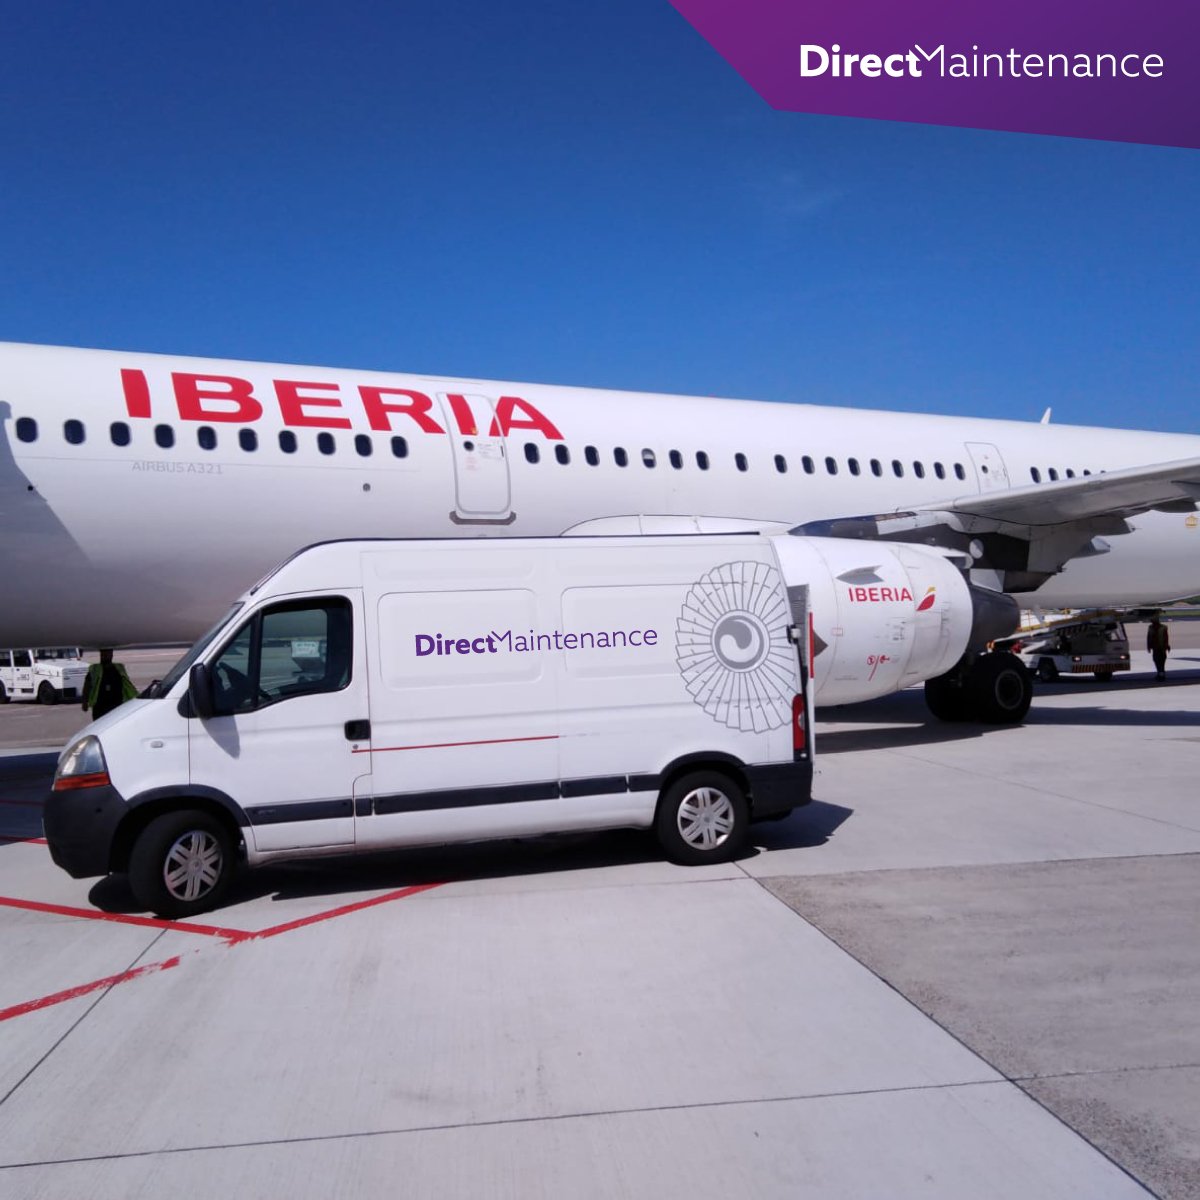 Direct Maintenance partners with Iberia at Düsseldorf station